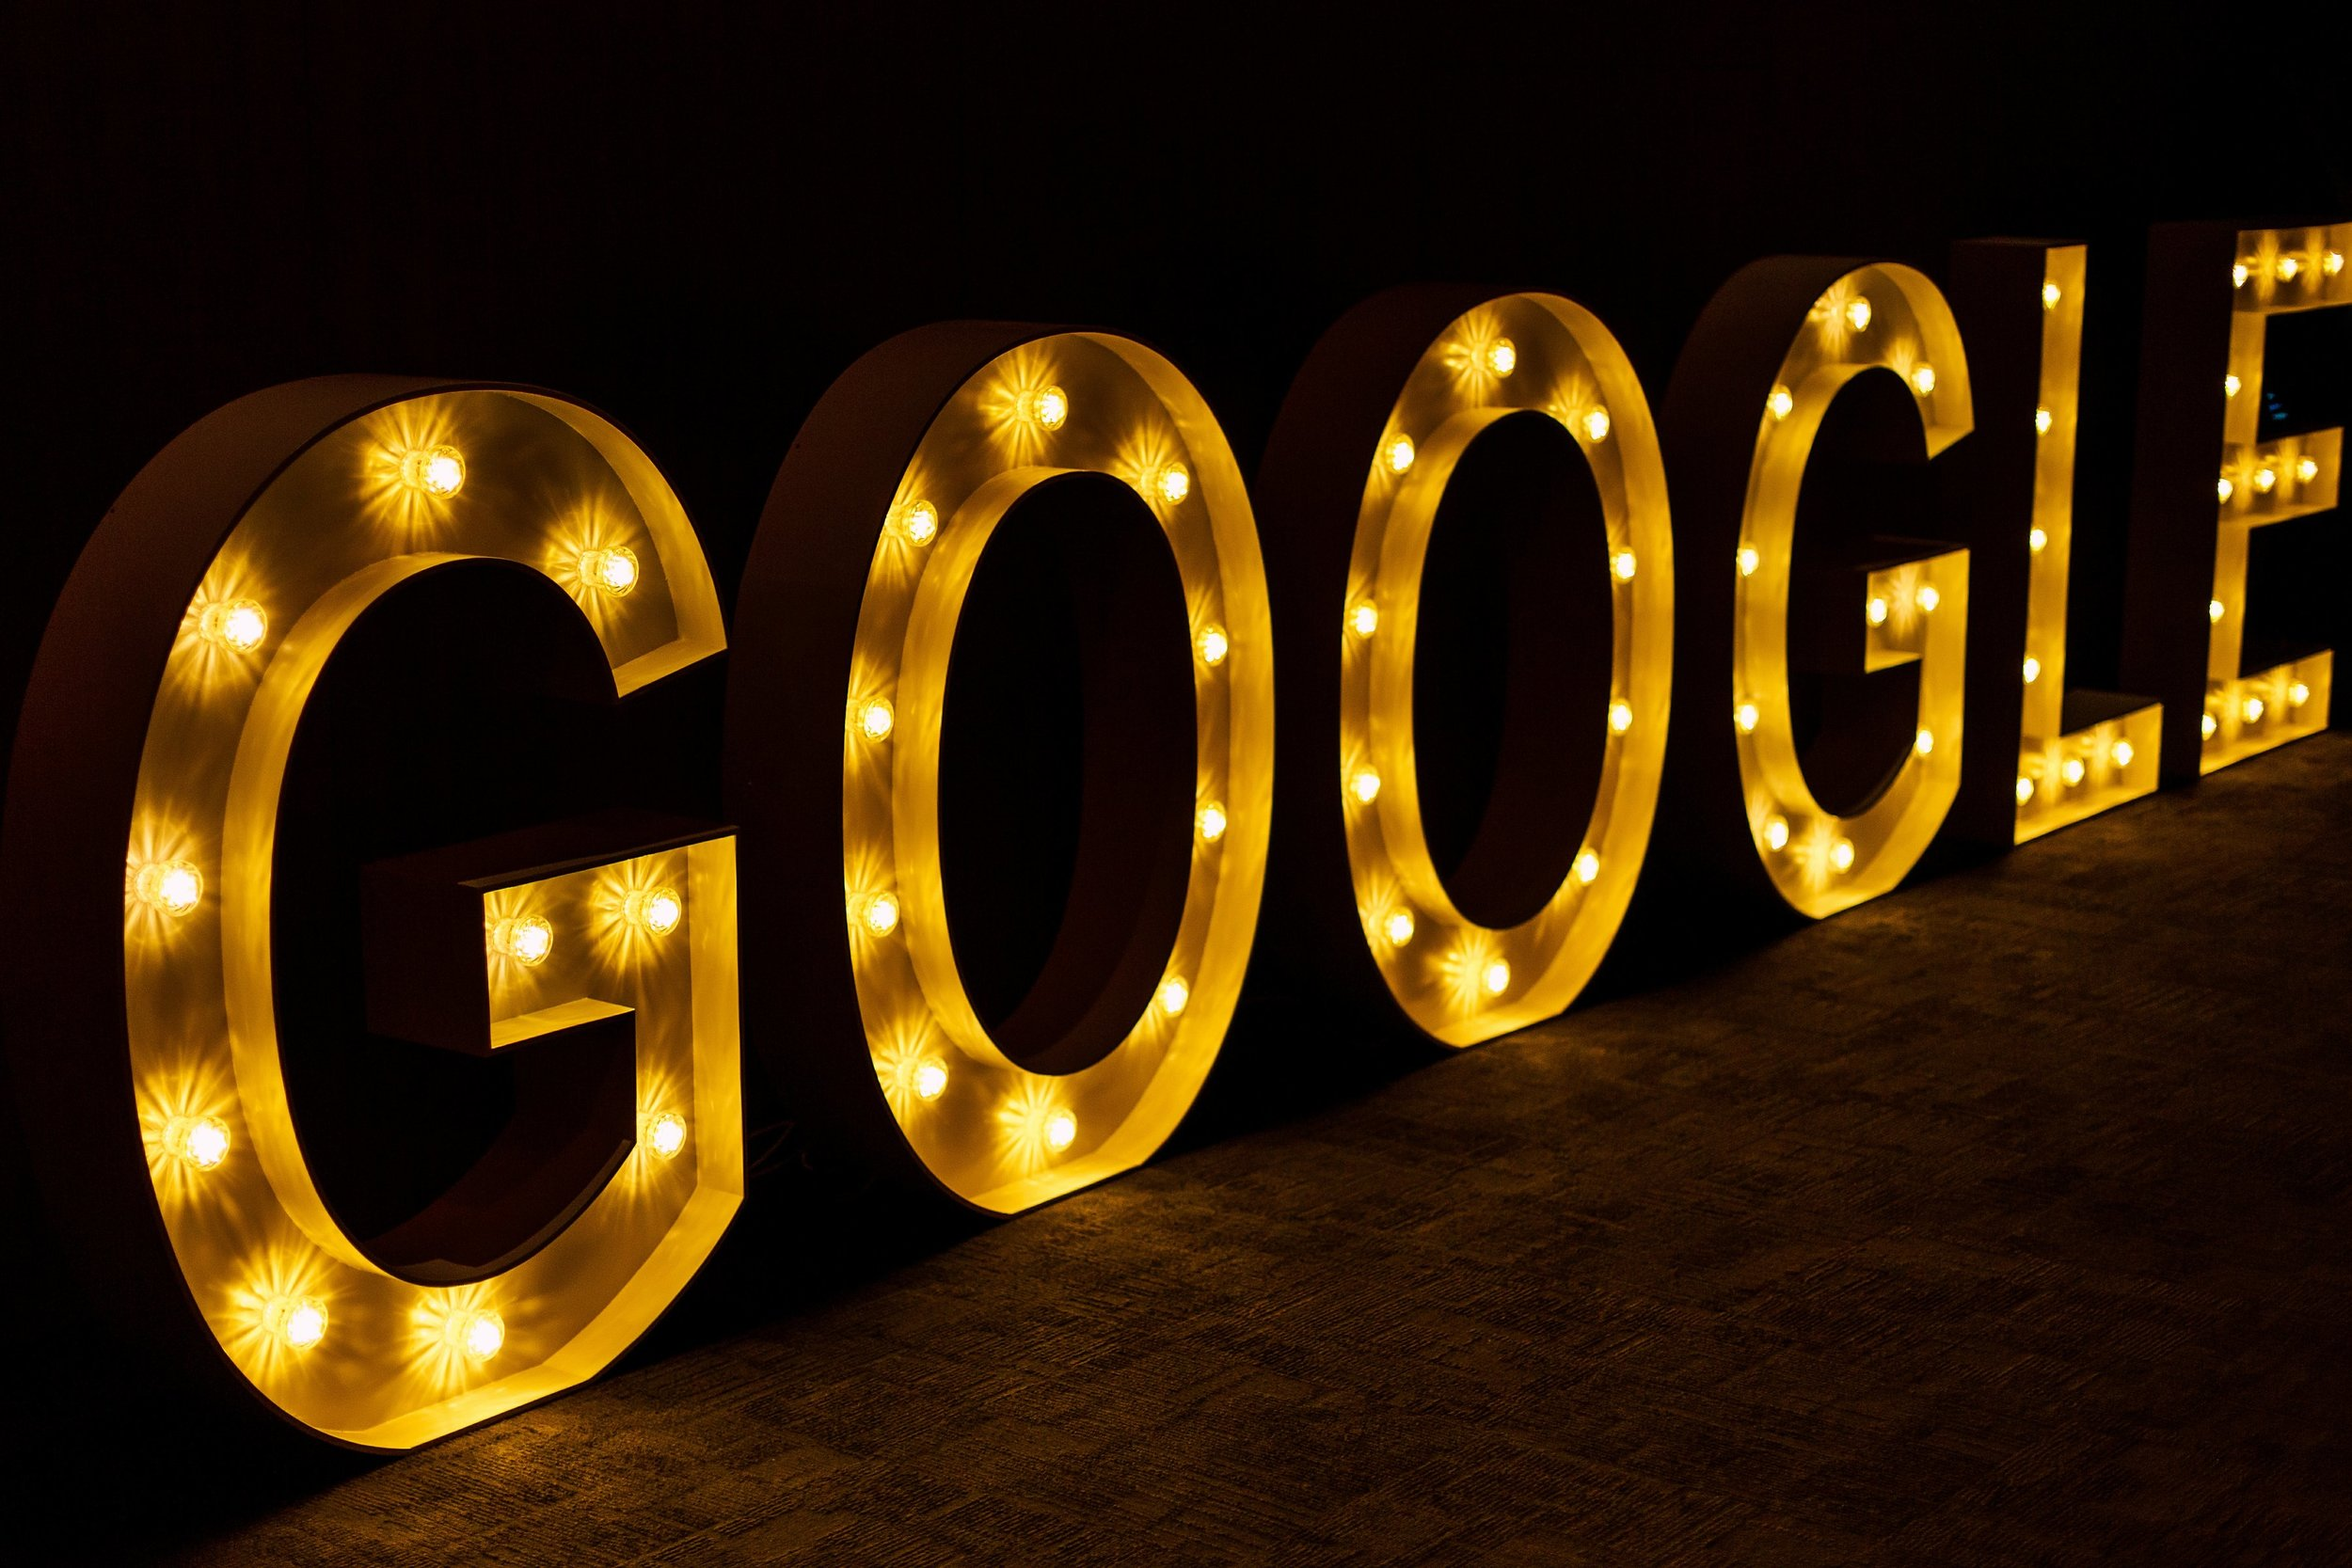 google-local-guides-event-letters-edison-bulbs